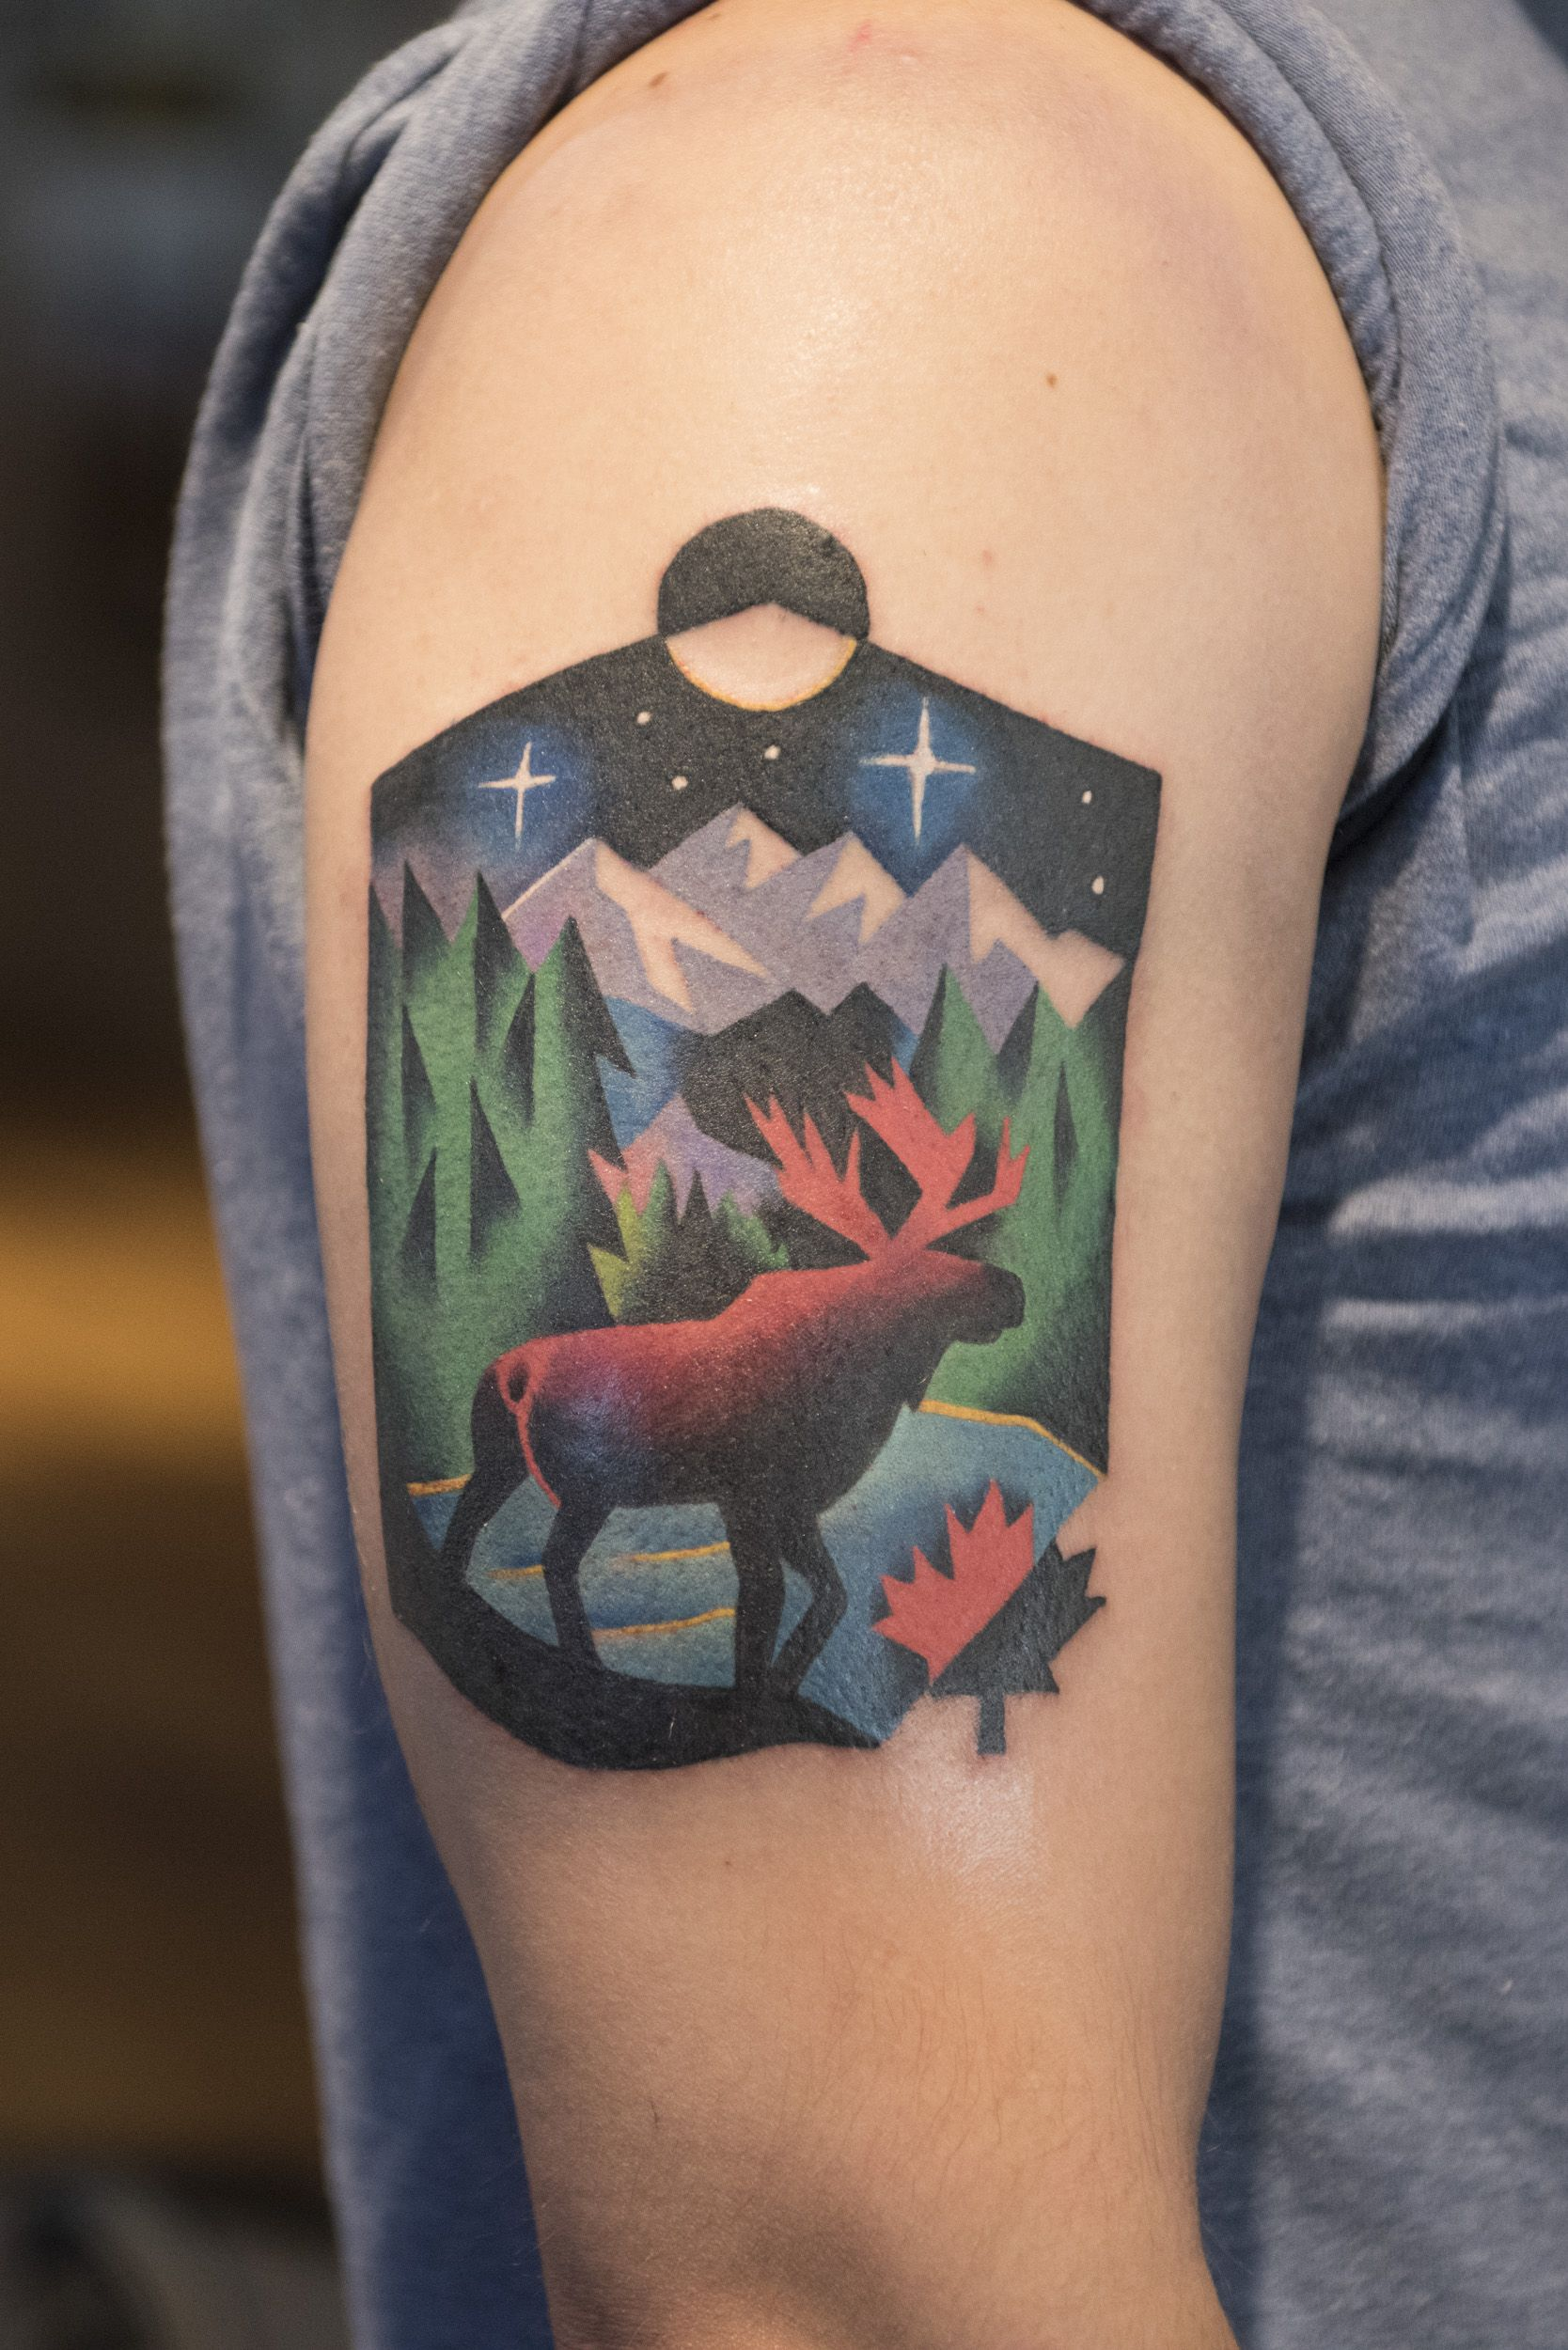 Tribute To Canada By David Cote At Imperial Tattoo Connexion In